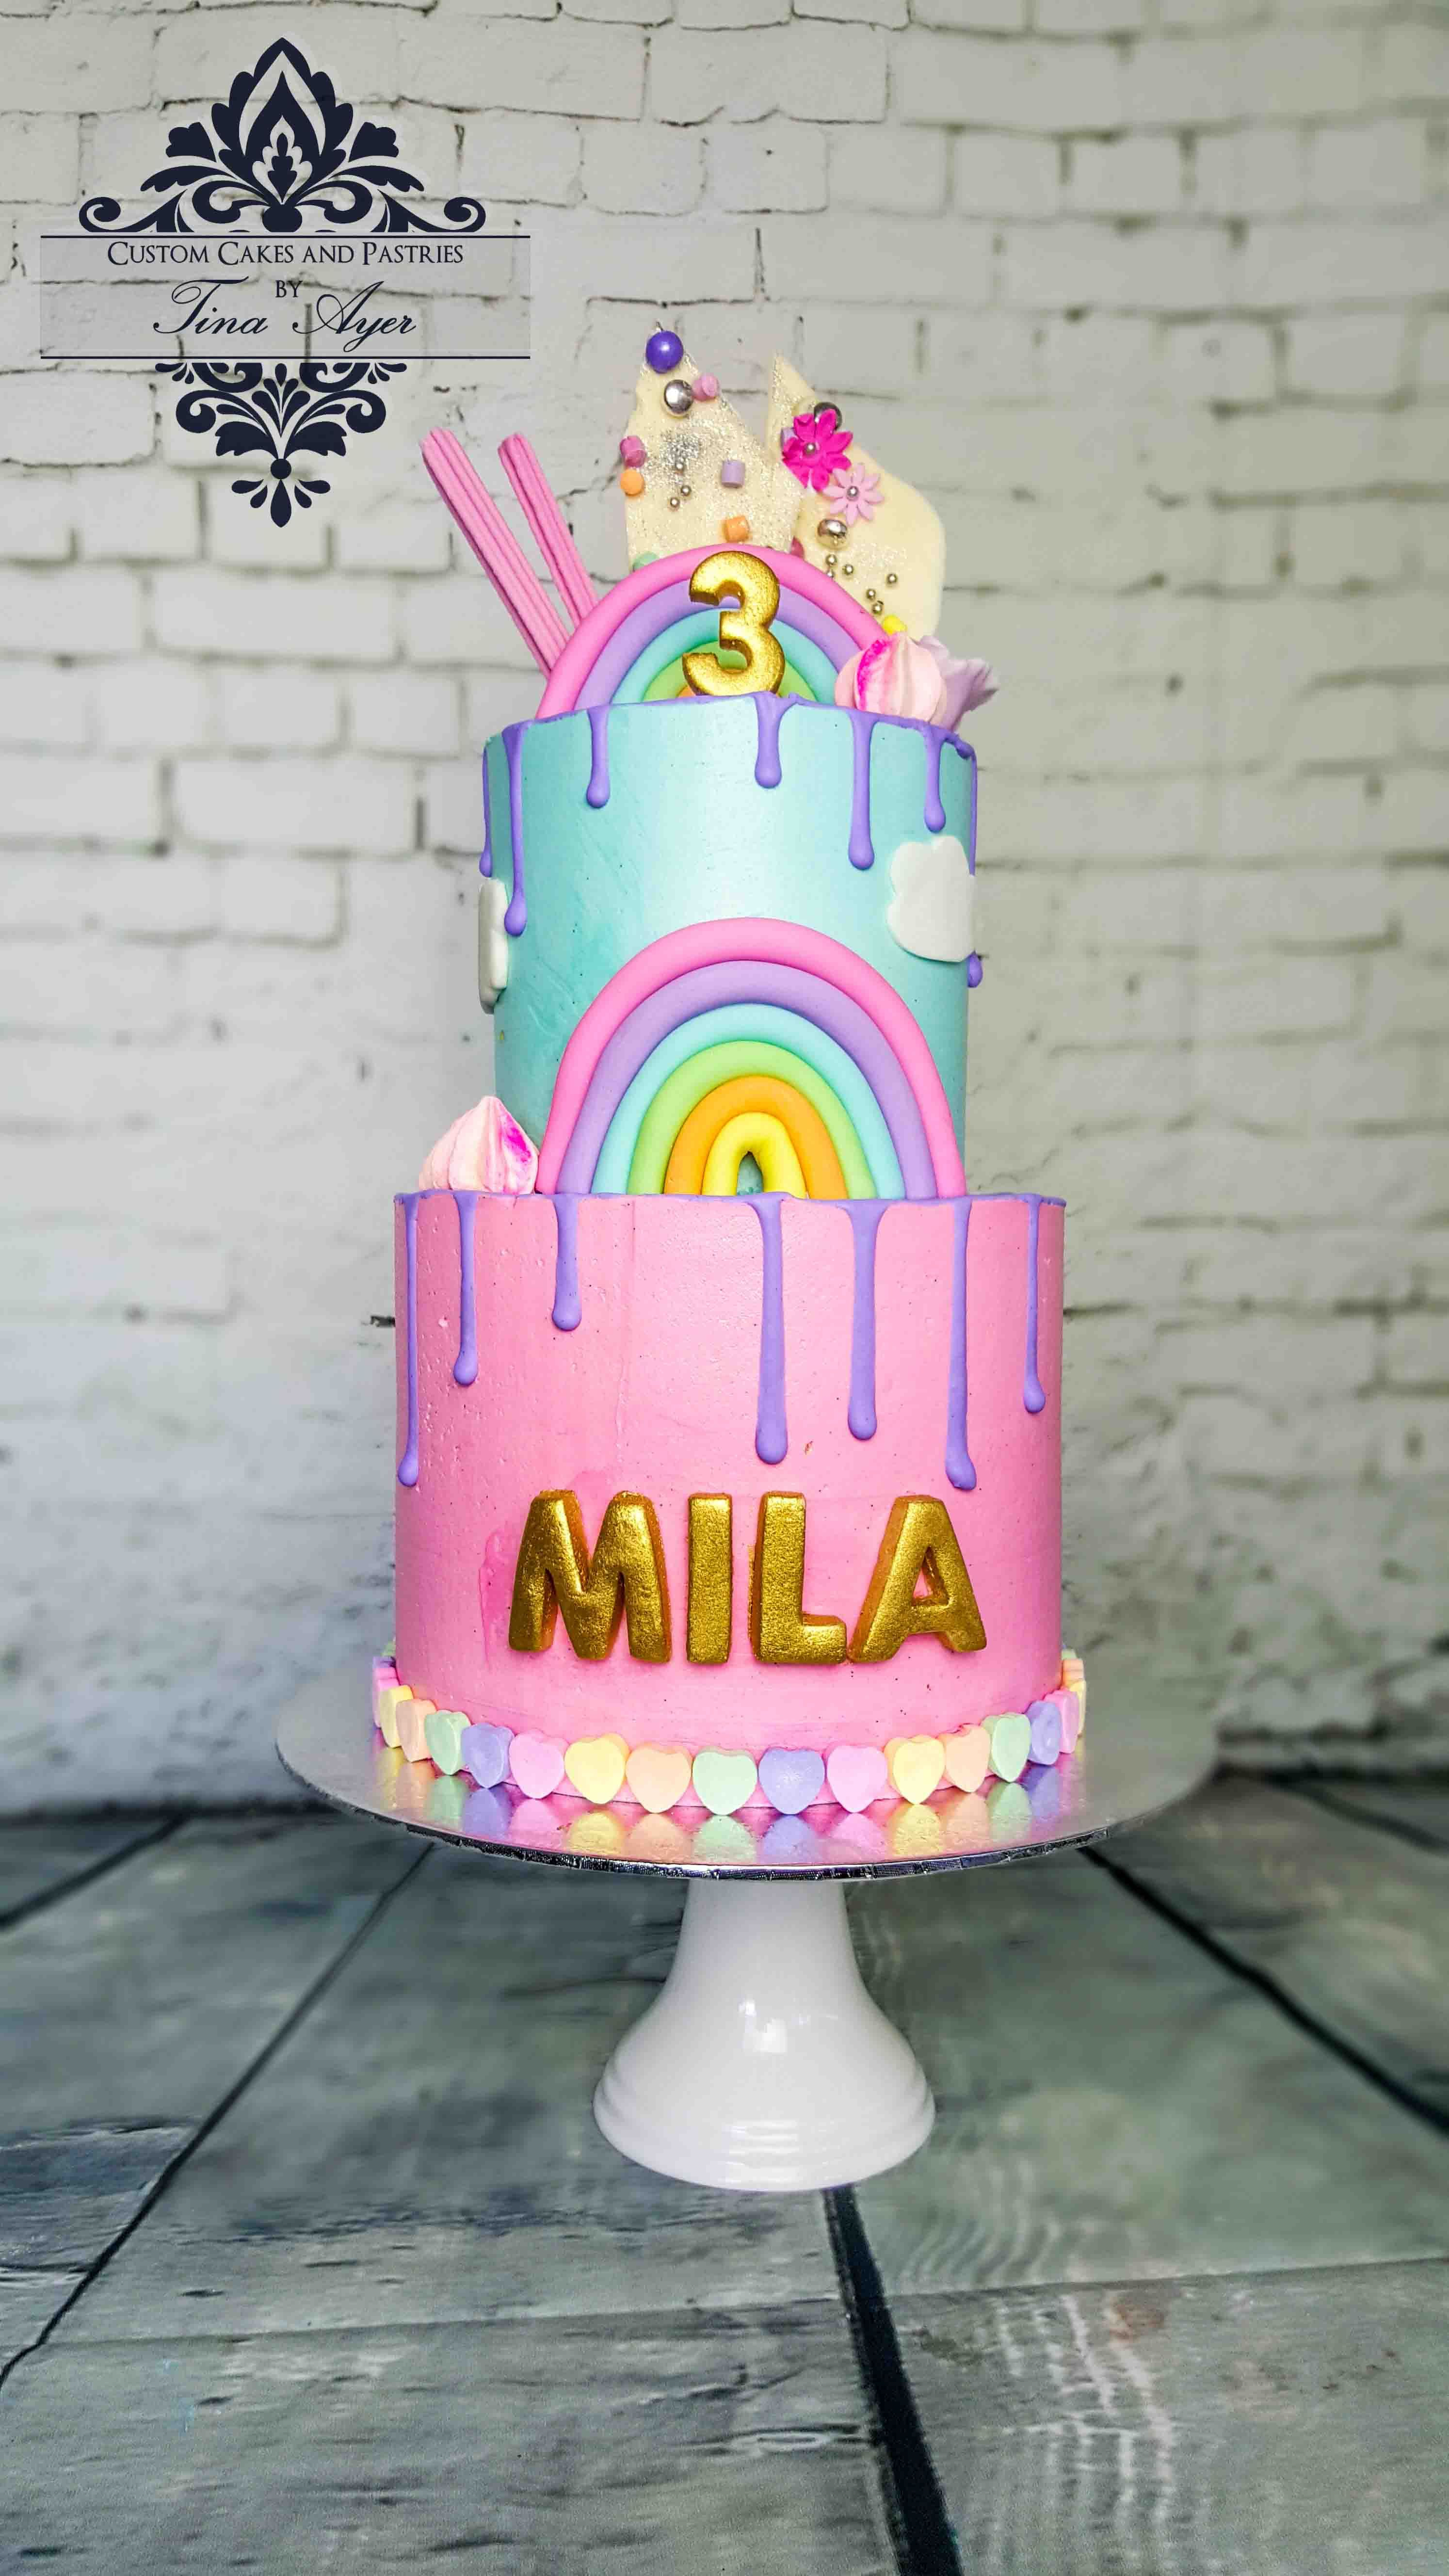 Drip Cake 2 Tier Rainbow Pastel With Hearts And Gold By Tina Ayer